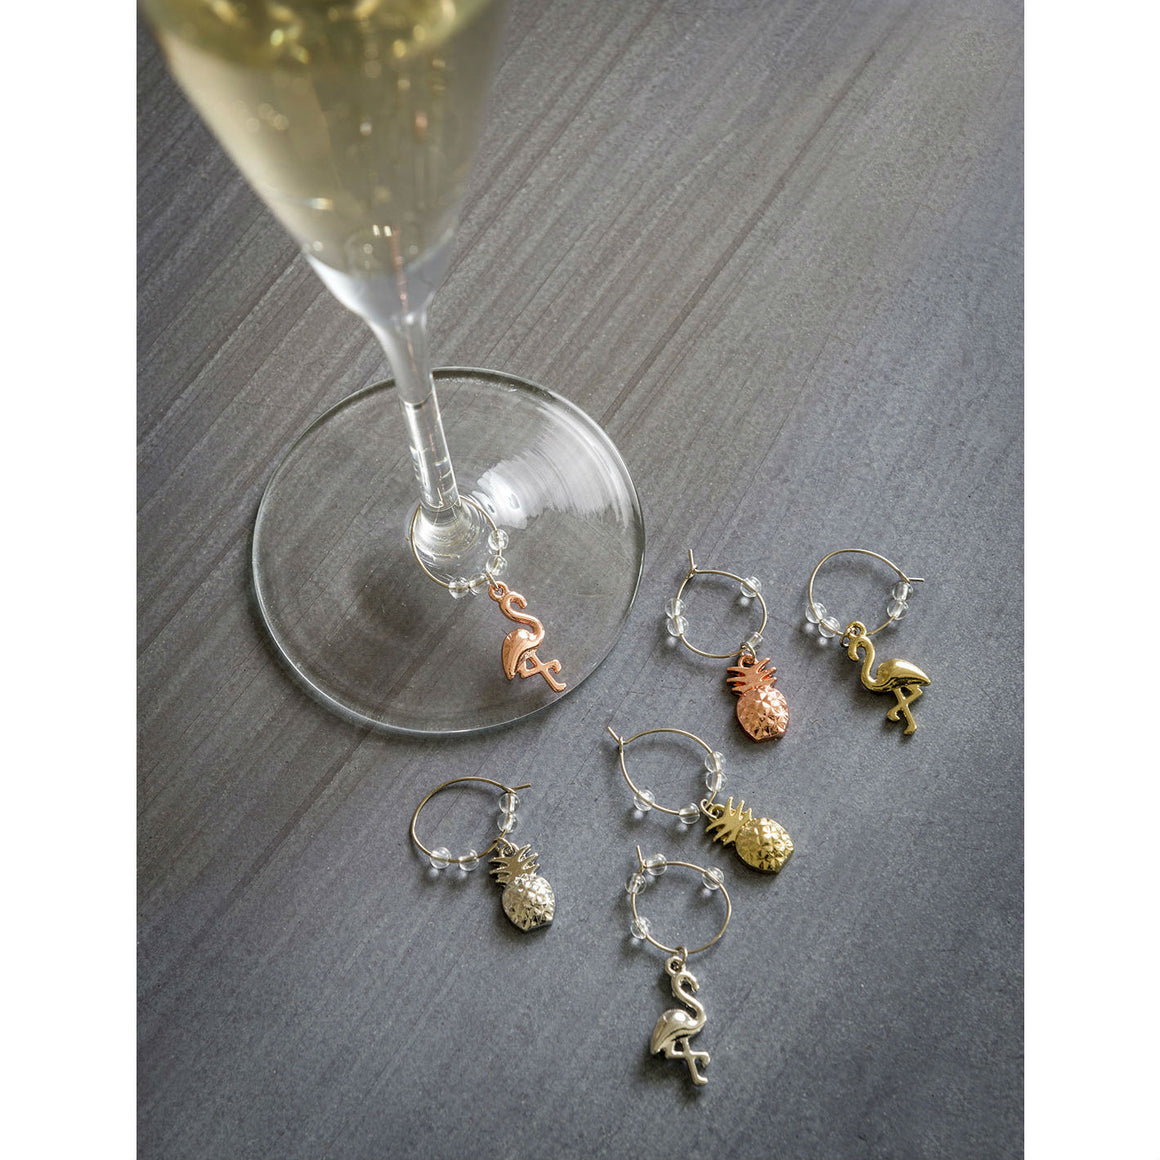 Set of 6 Tropical Wine Charms